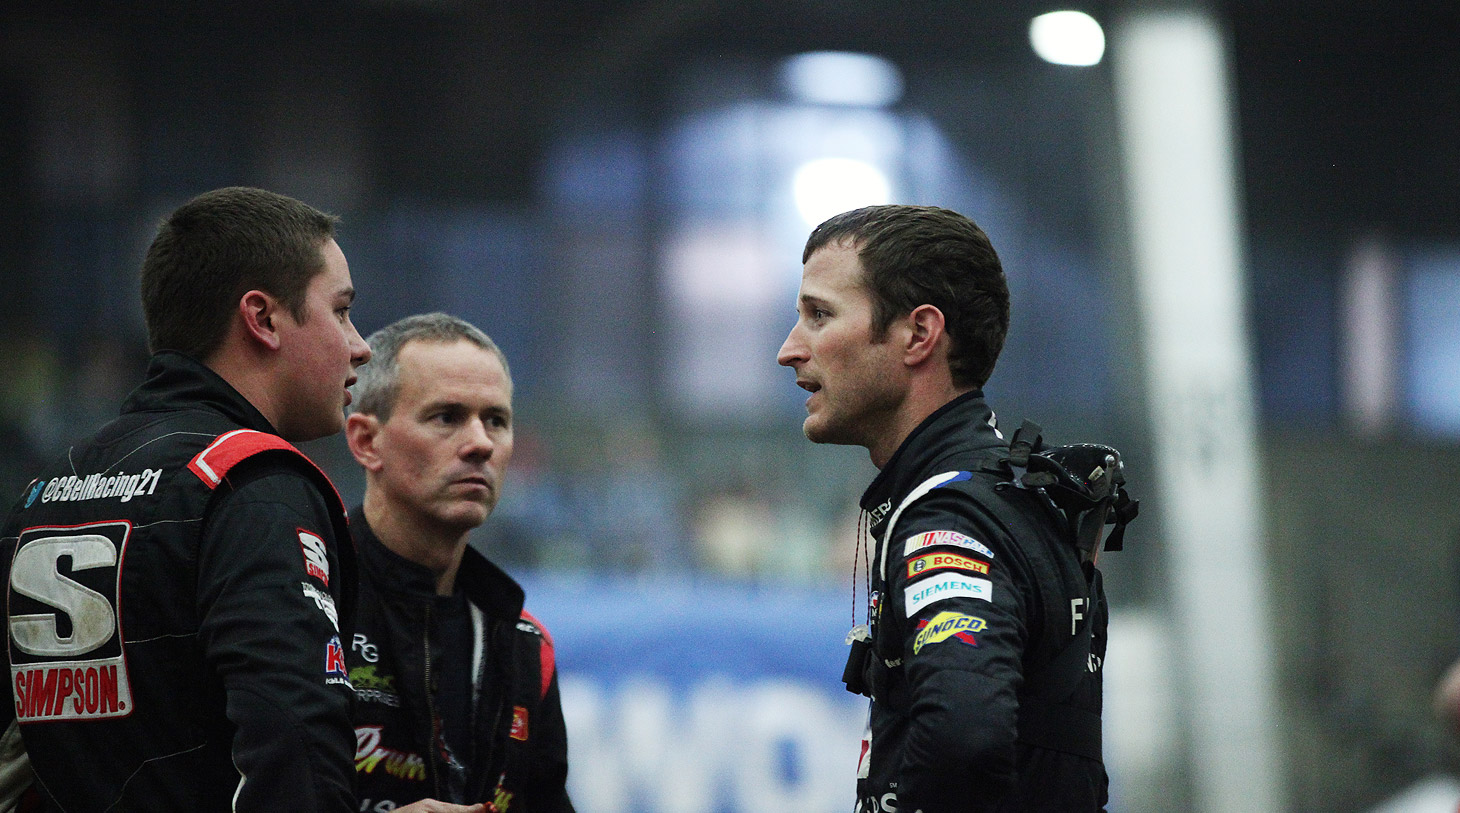 Christopher Bell, Jerry Coons Jr and Kasey Kahne infield at The 2016 Chili Bowl